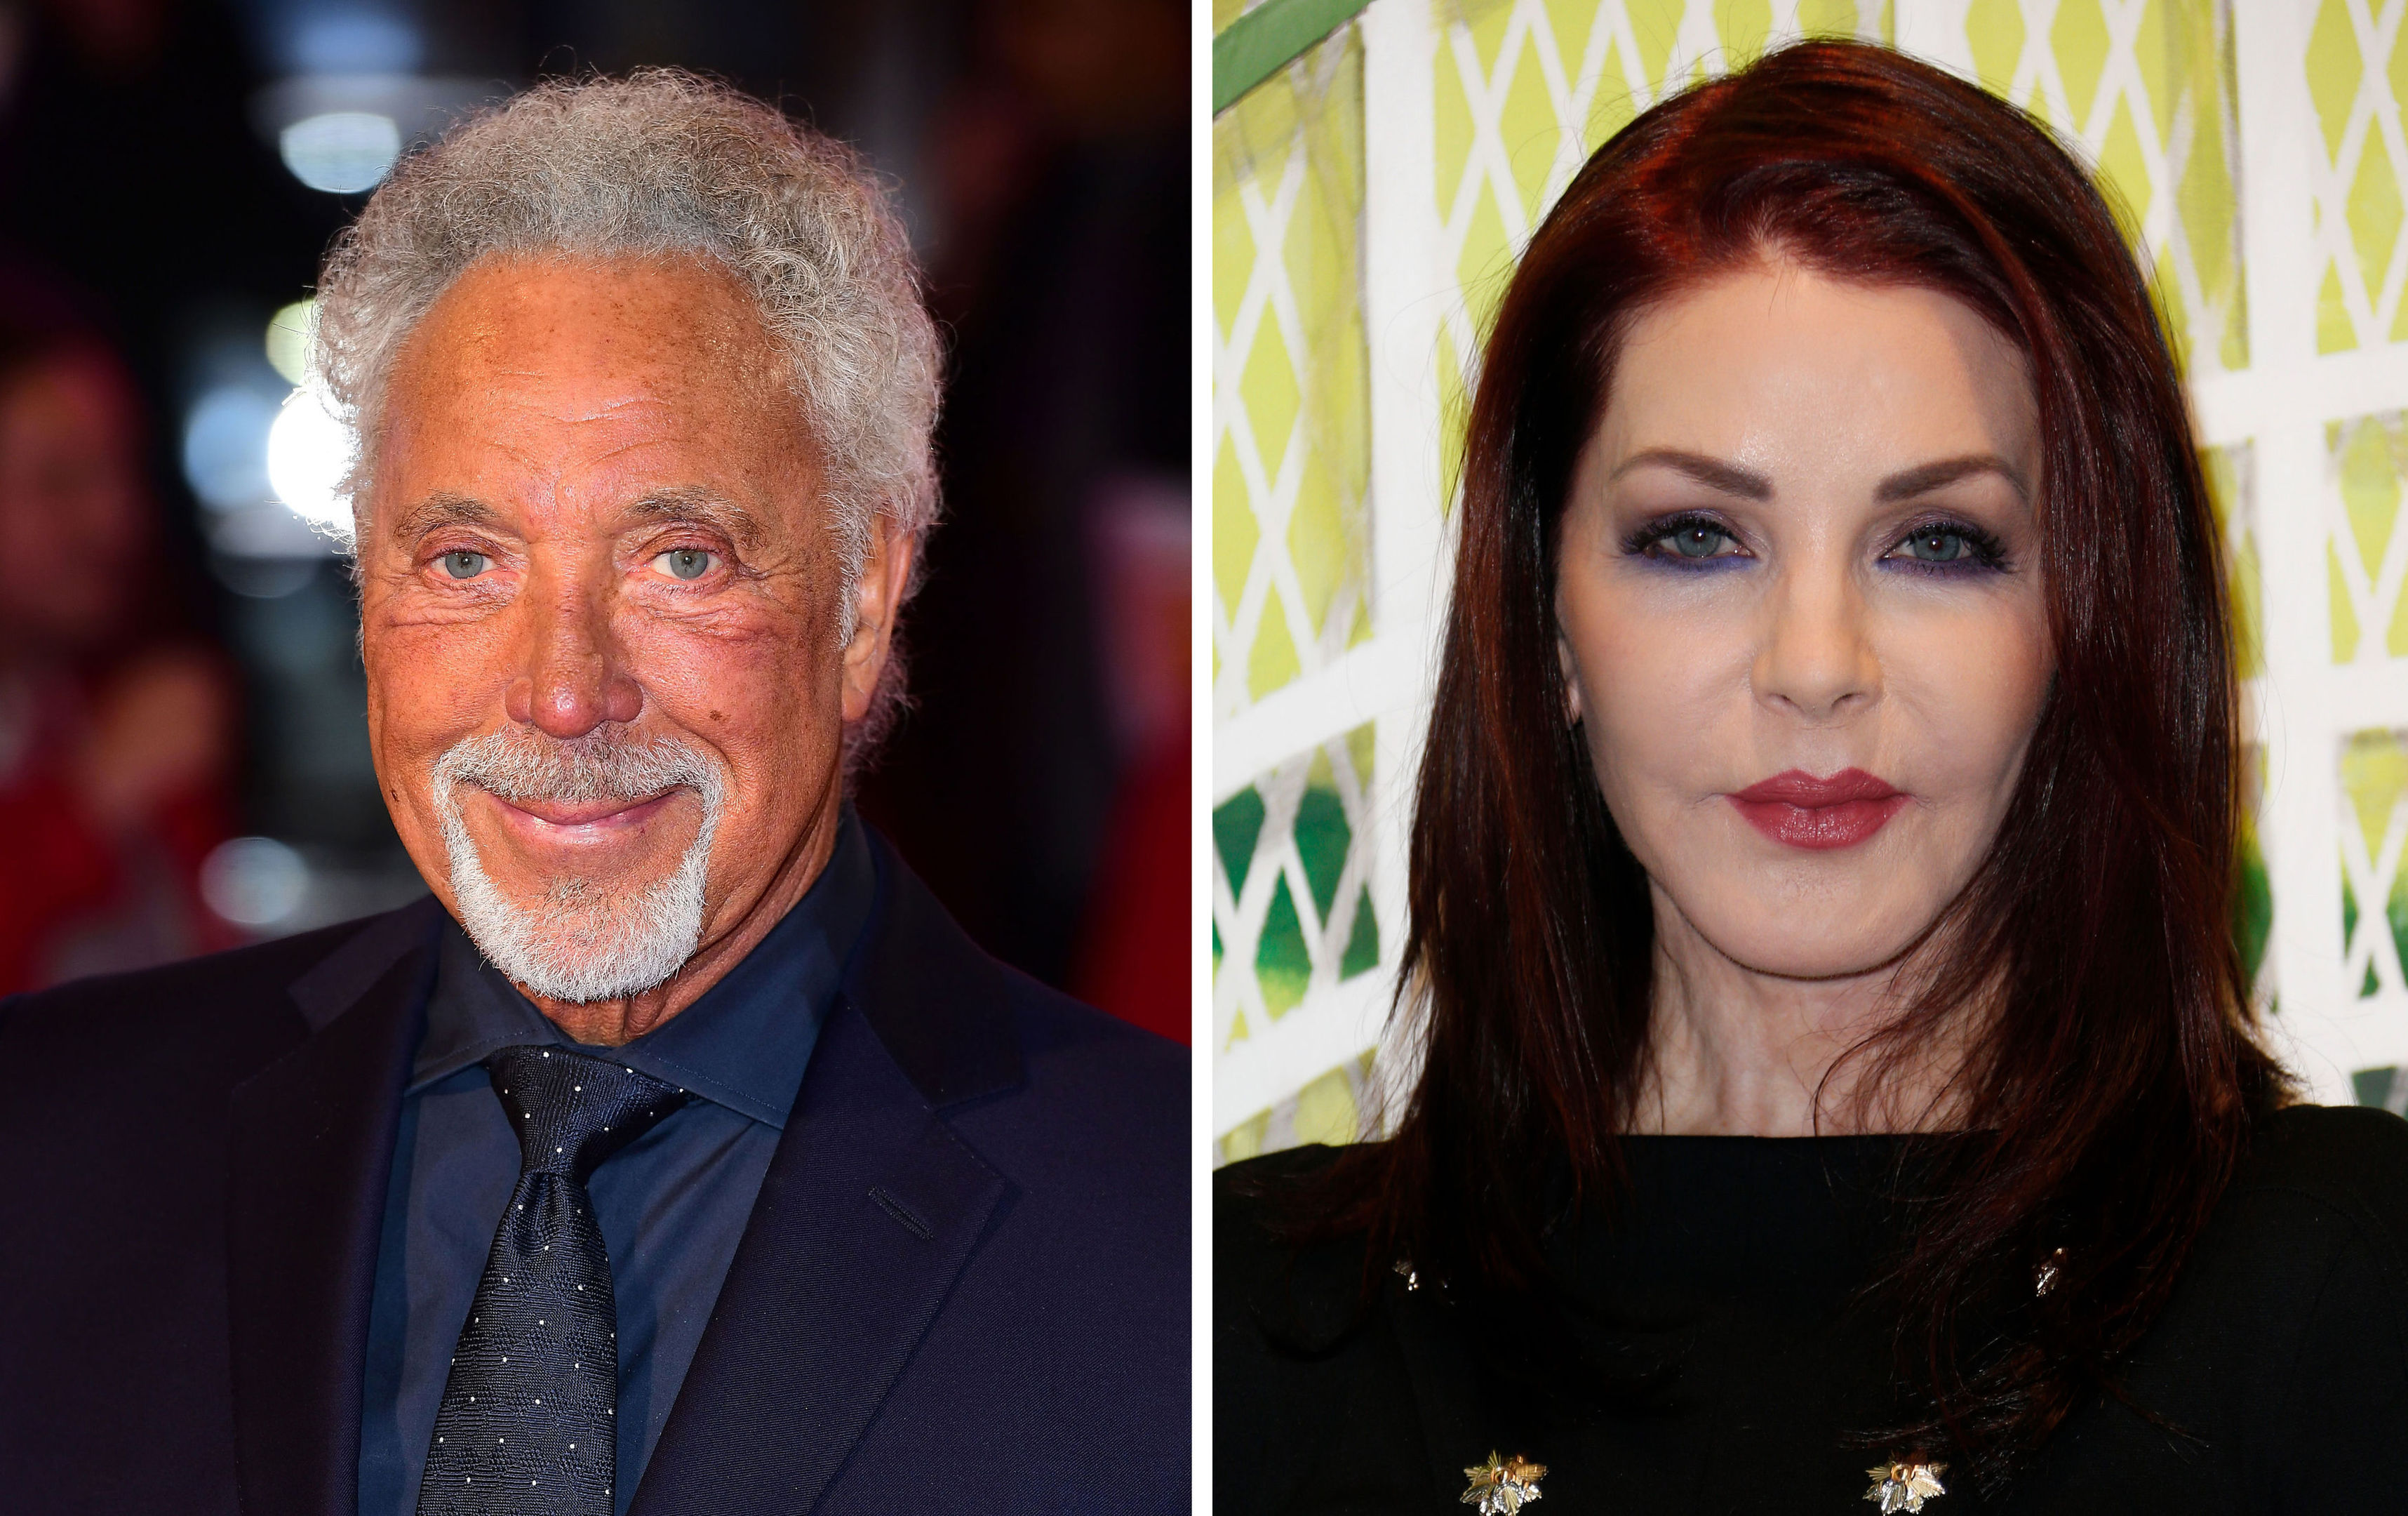 Sir Tom Jones and Elvis Presley's ex-wife Priscilla, who are dating according to reports (PA Wire)